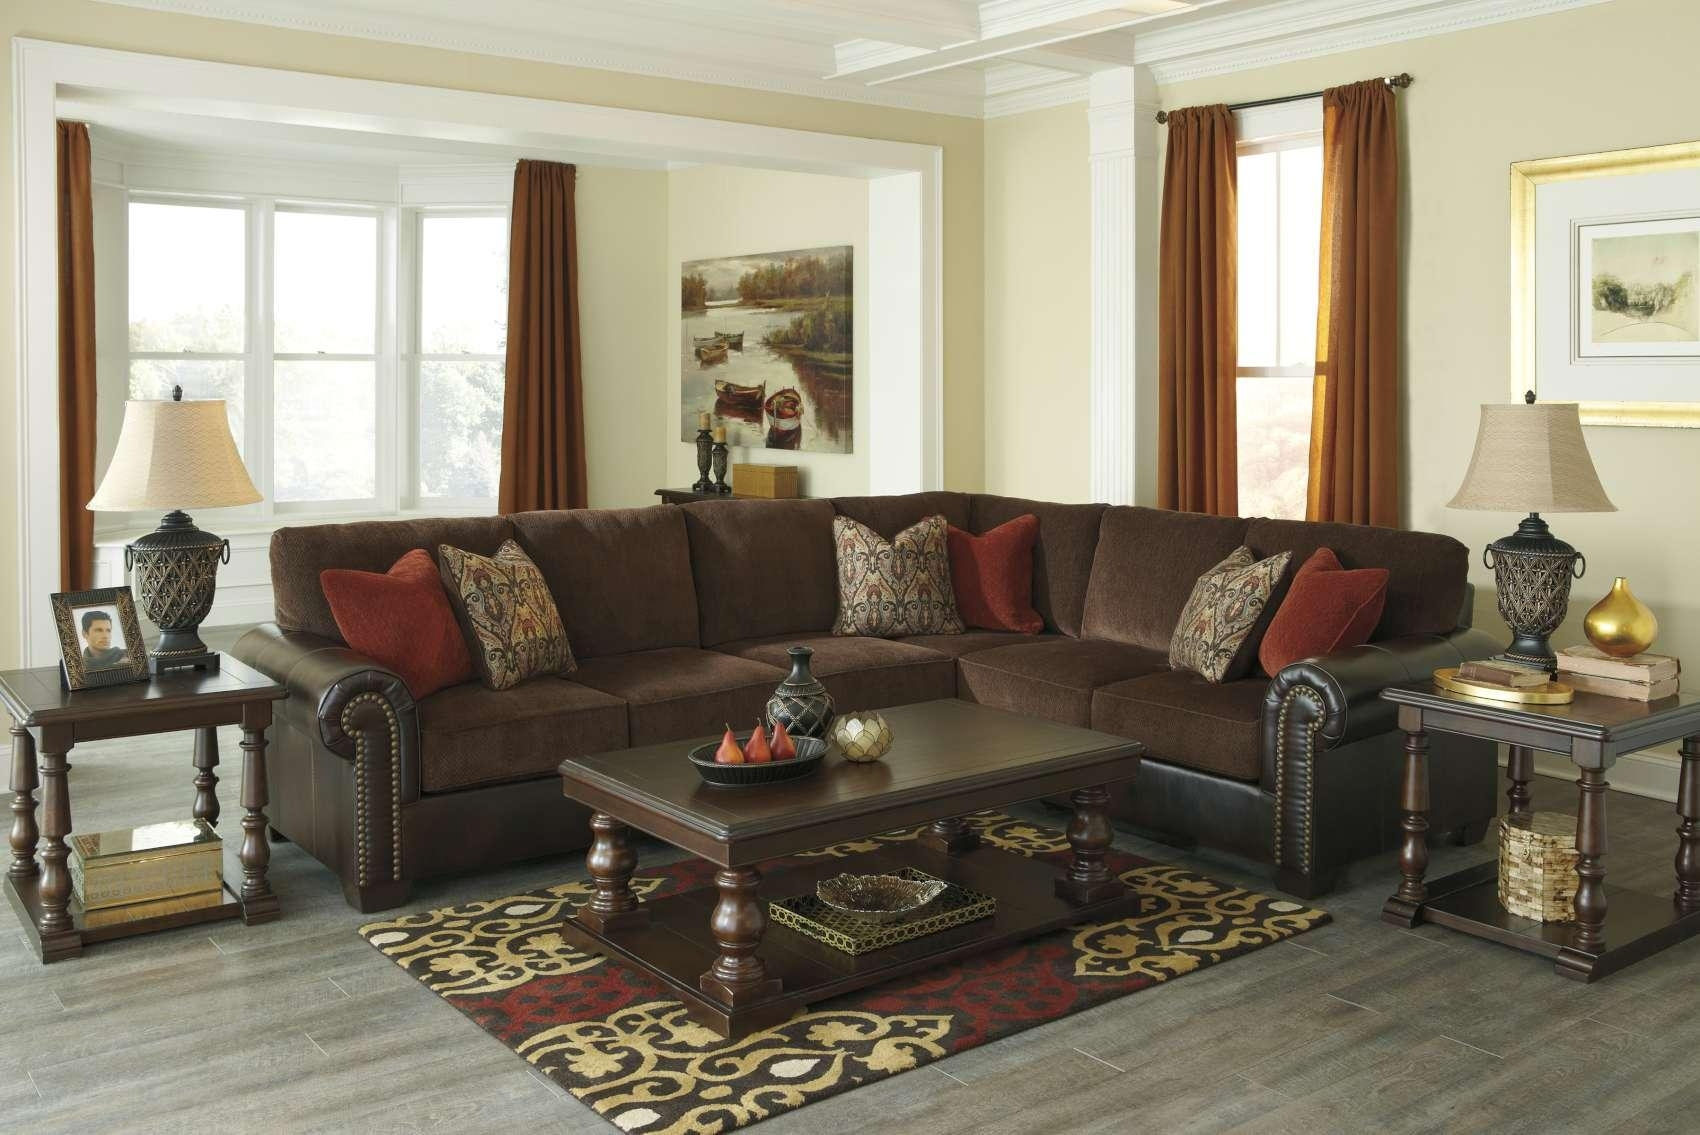 Bridgeport Sofa With Ideas Hd Images 26423 | Kengire Pertaining To Bridgeport Sofas (Image 8 of 20)